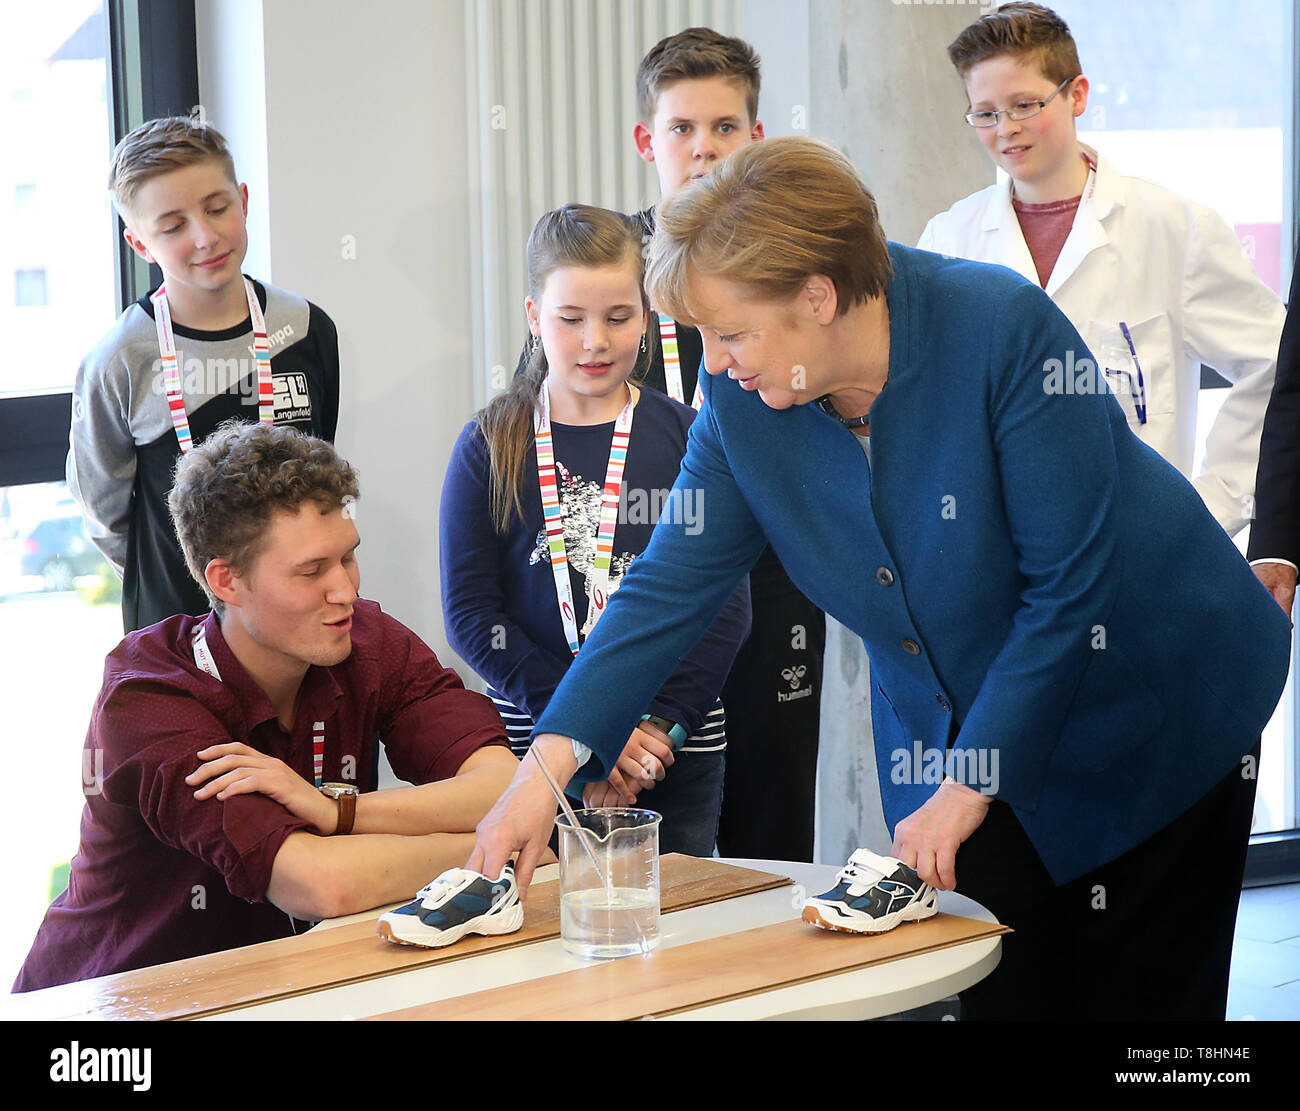 Wuppertal, Germany. 13th May, 2019. Chancellor Angela Merkel (r, CDU) conducts an experiment with the students at the Junior University on the slip resistance of surfaces. The Wuppertal Junior University is a nationwide unique extracurricular educational and research institution for 4 to 20 year olds. Credit: Oliver Berg/dpa/Alamy Live News - Stock Image